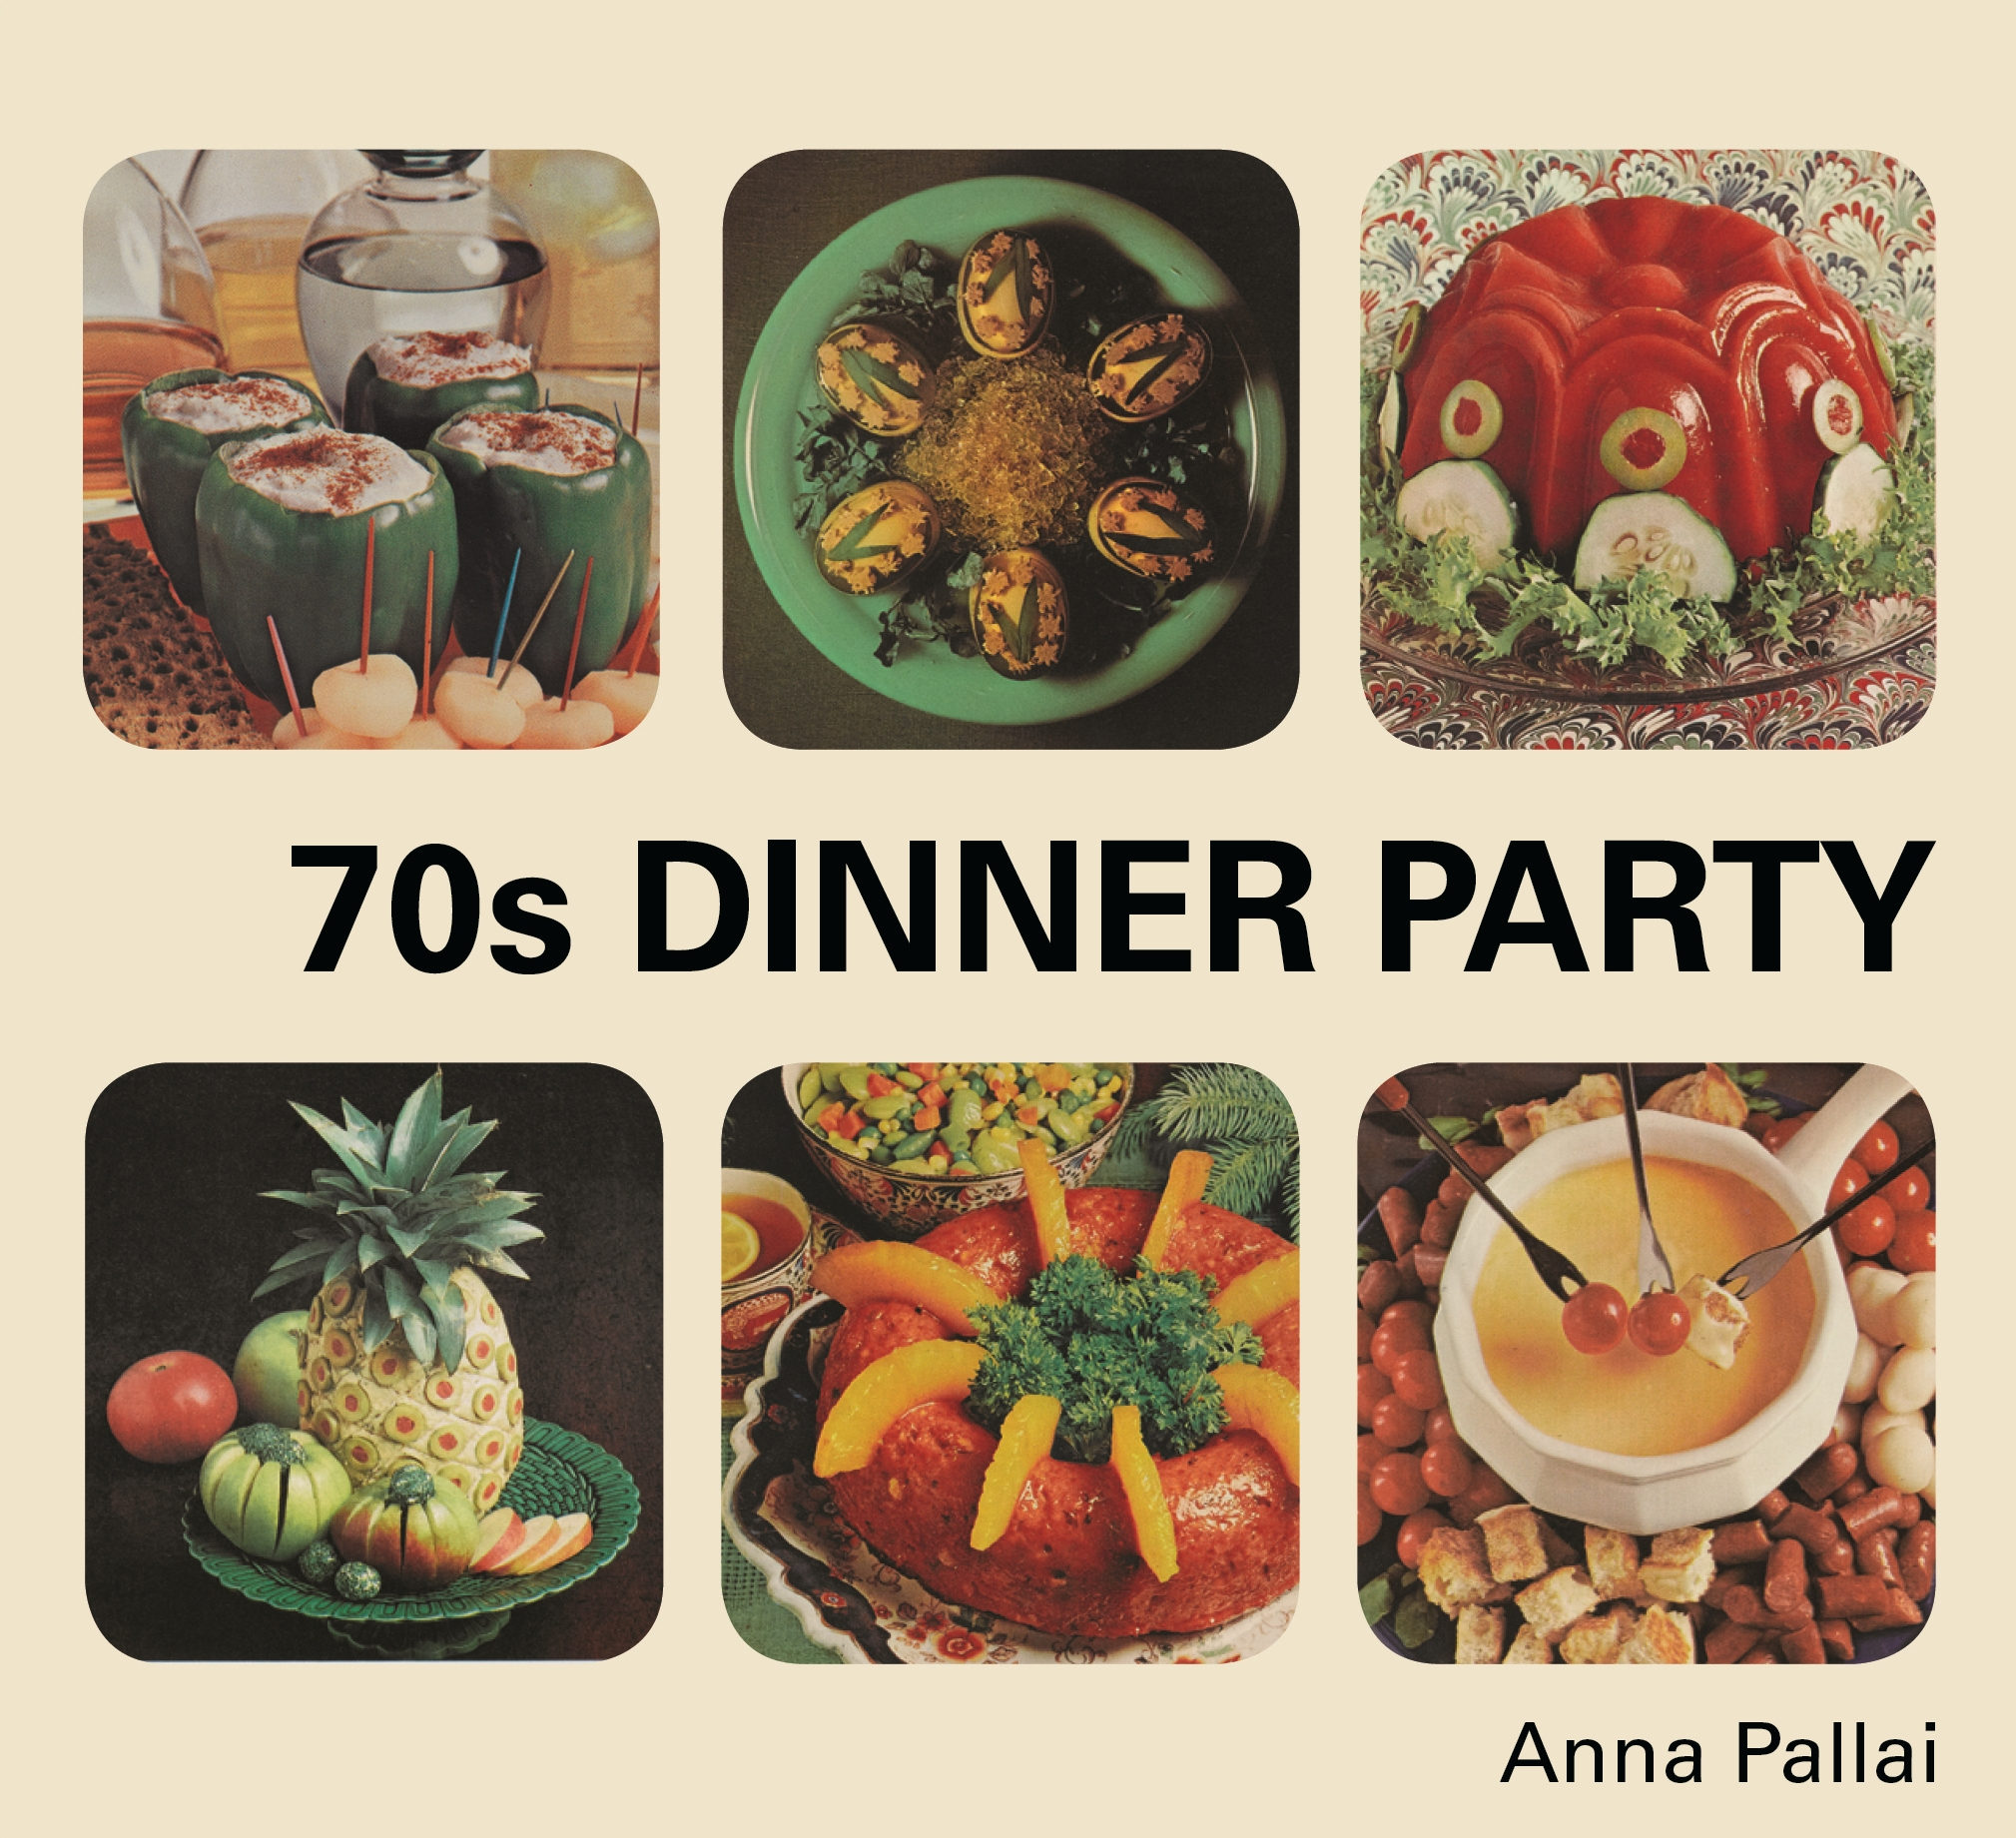 70s Dinner Party By Anna Pallai Penguin Books New Zealand